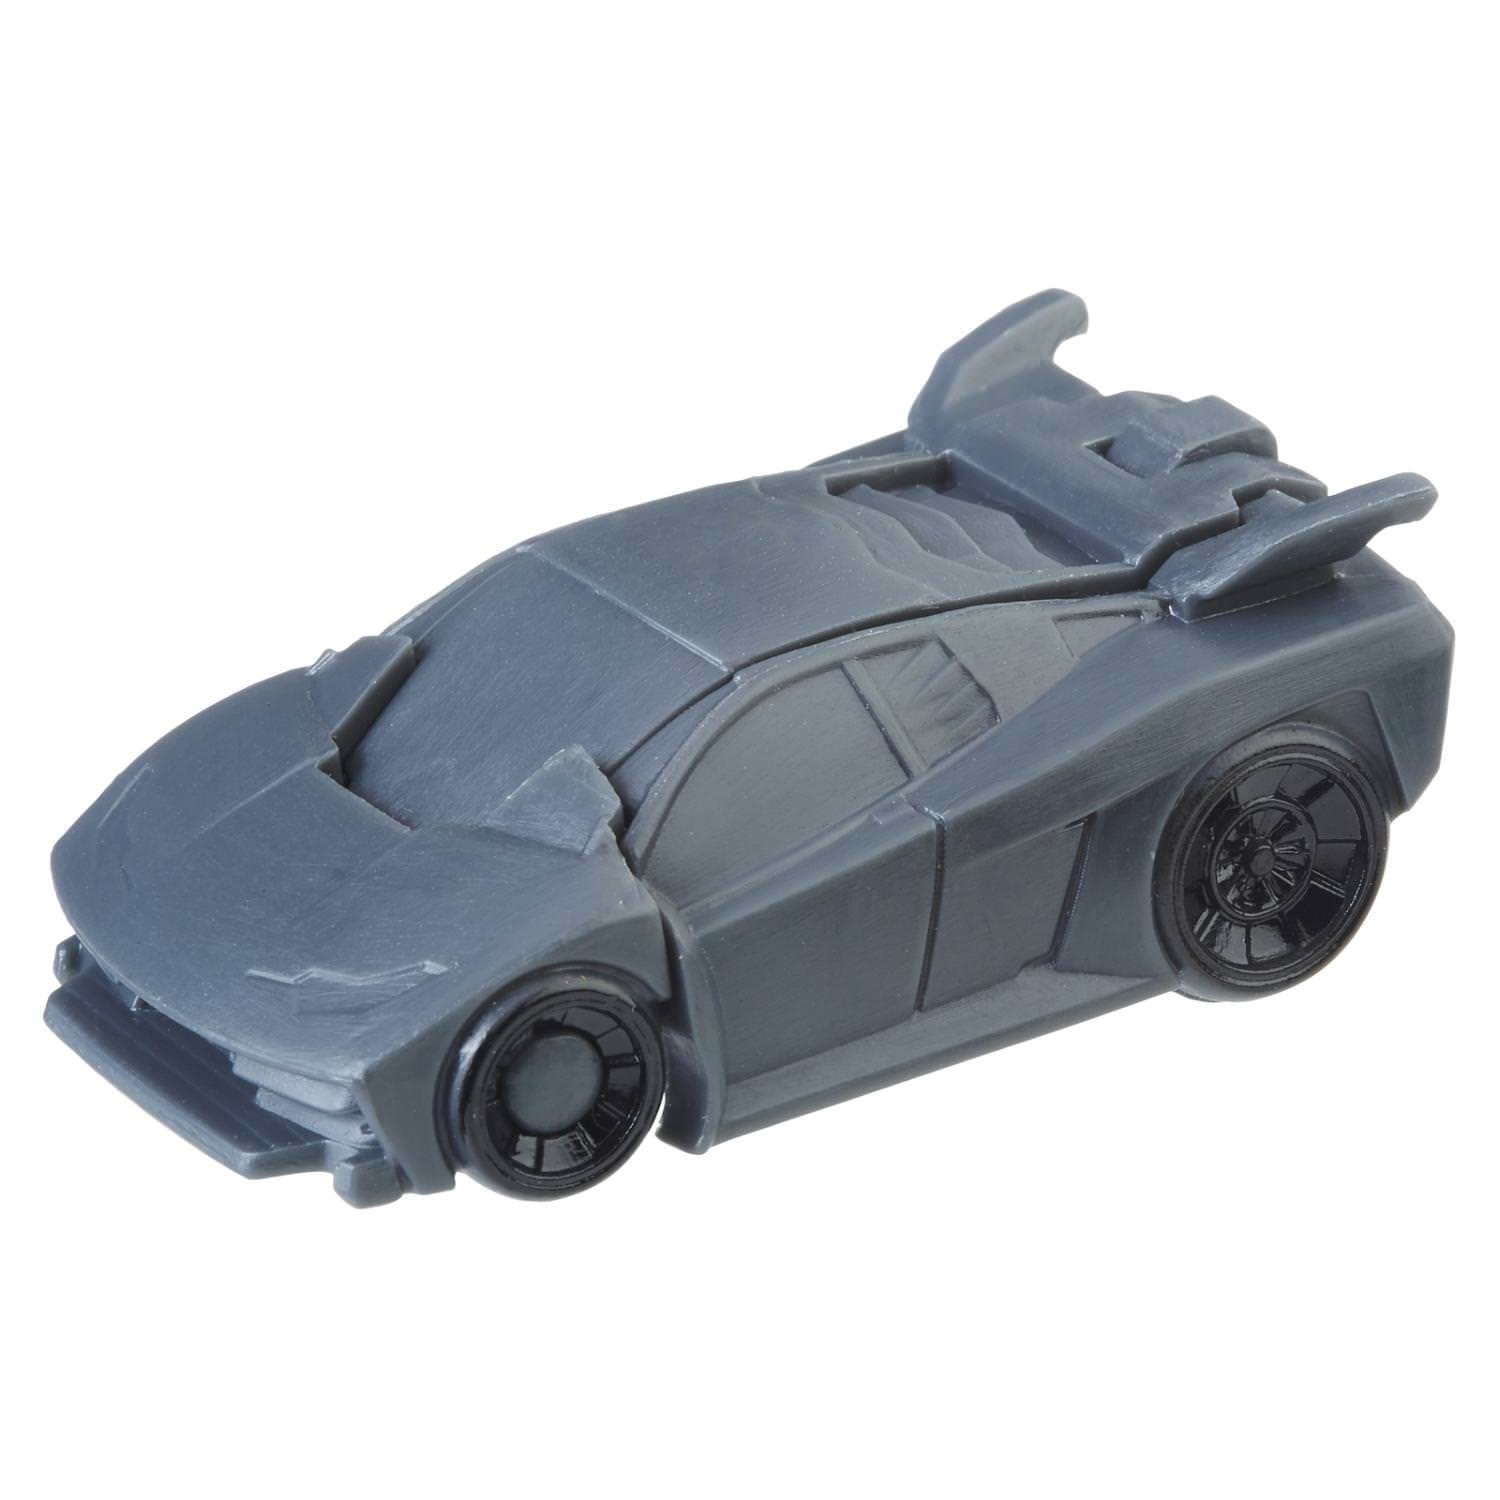 tiny-turbo-changers-toys-series-2-autobot-hot-rod-vehicle